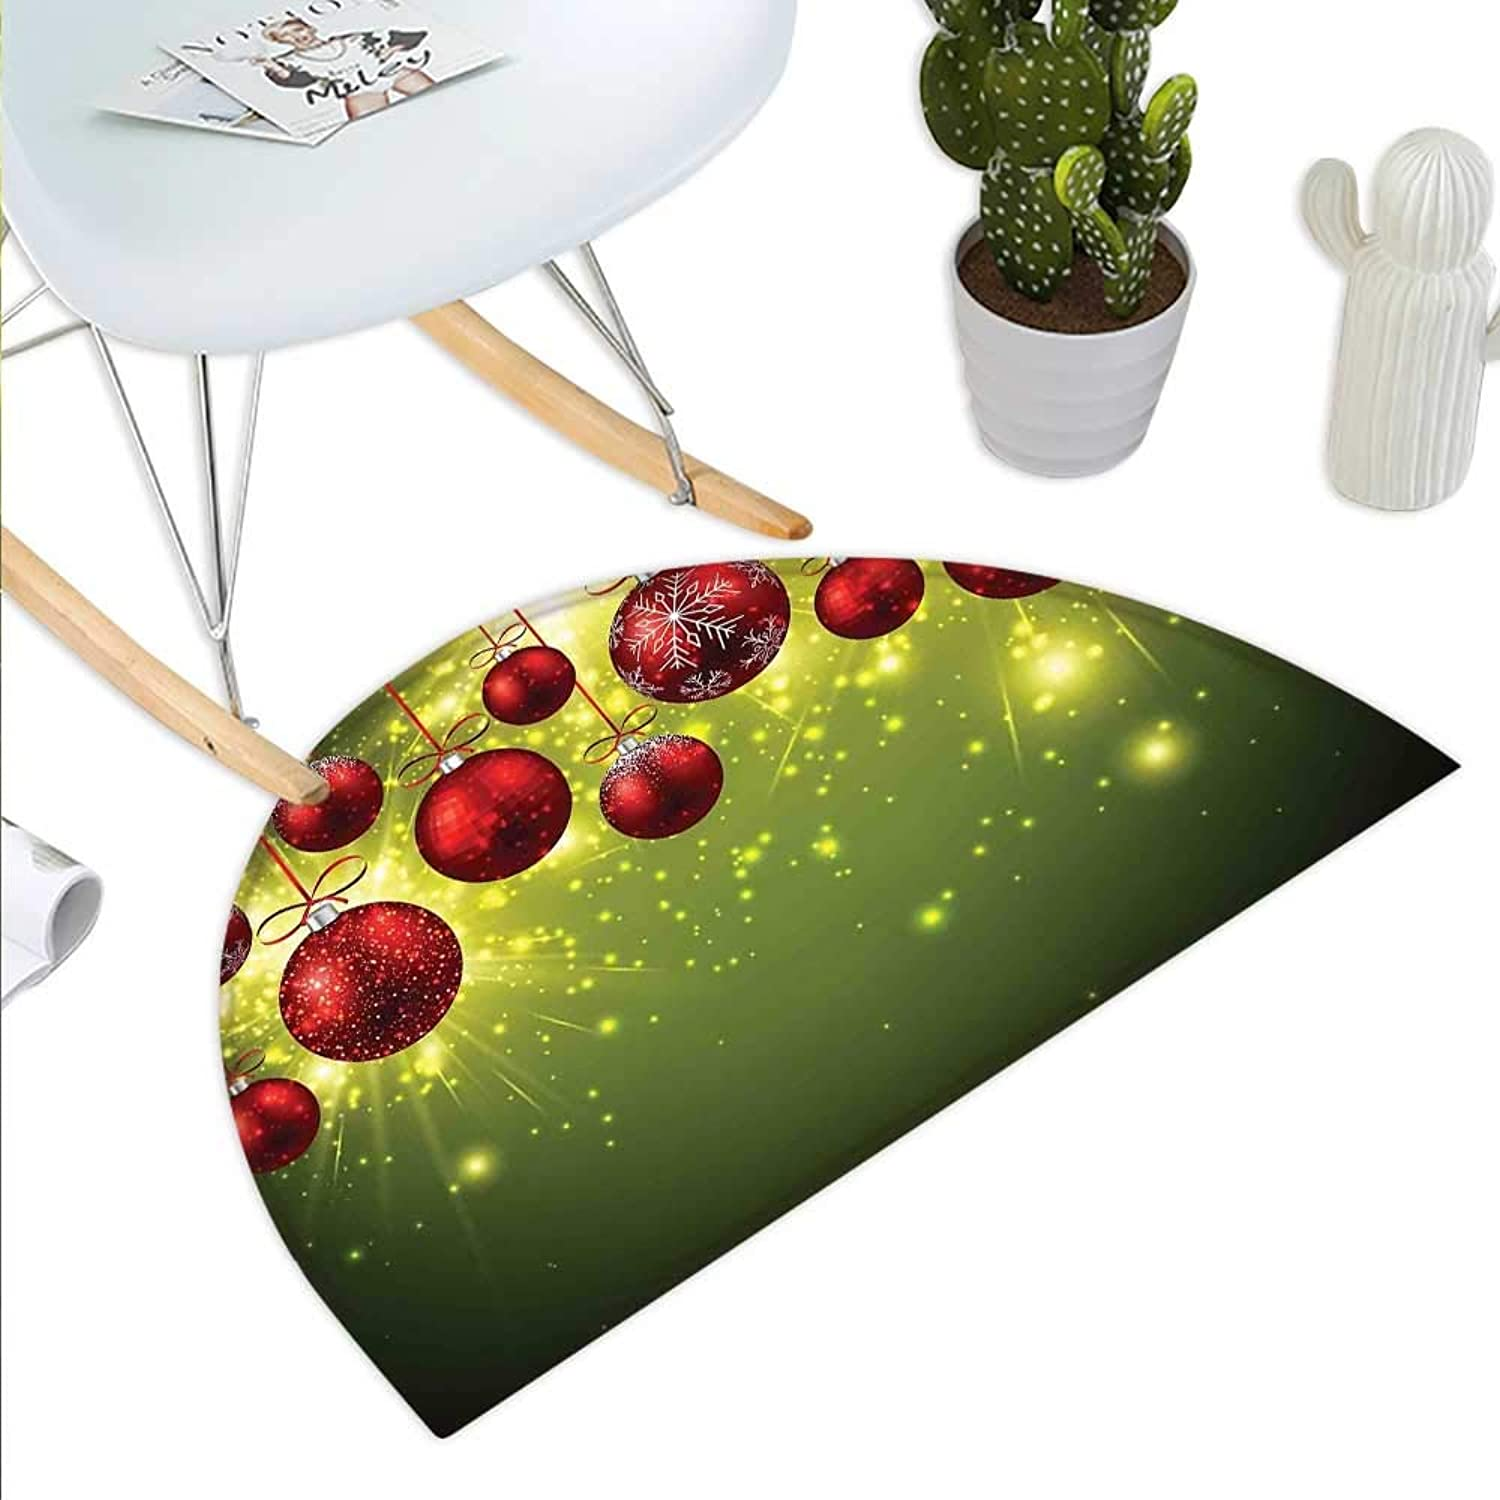 Christmas Semicircle Doormat Vibrant colord New Year Design with Psychedelic Digital Effects and Baubles Print Halfmoon doormats H 43.3  xD 64.9  Green Red